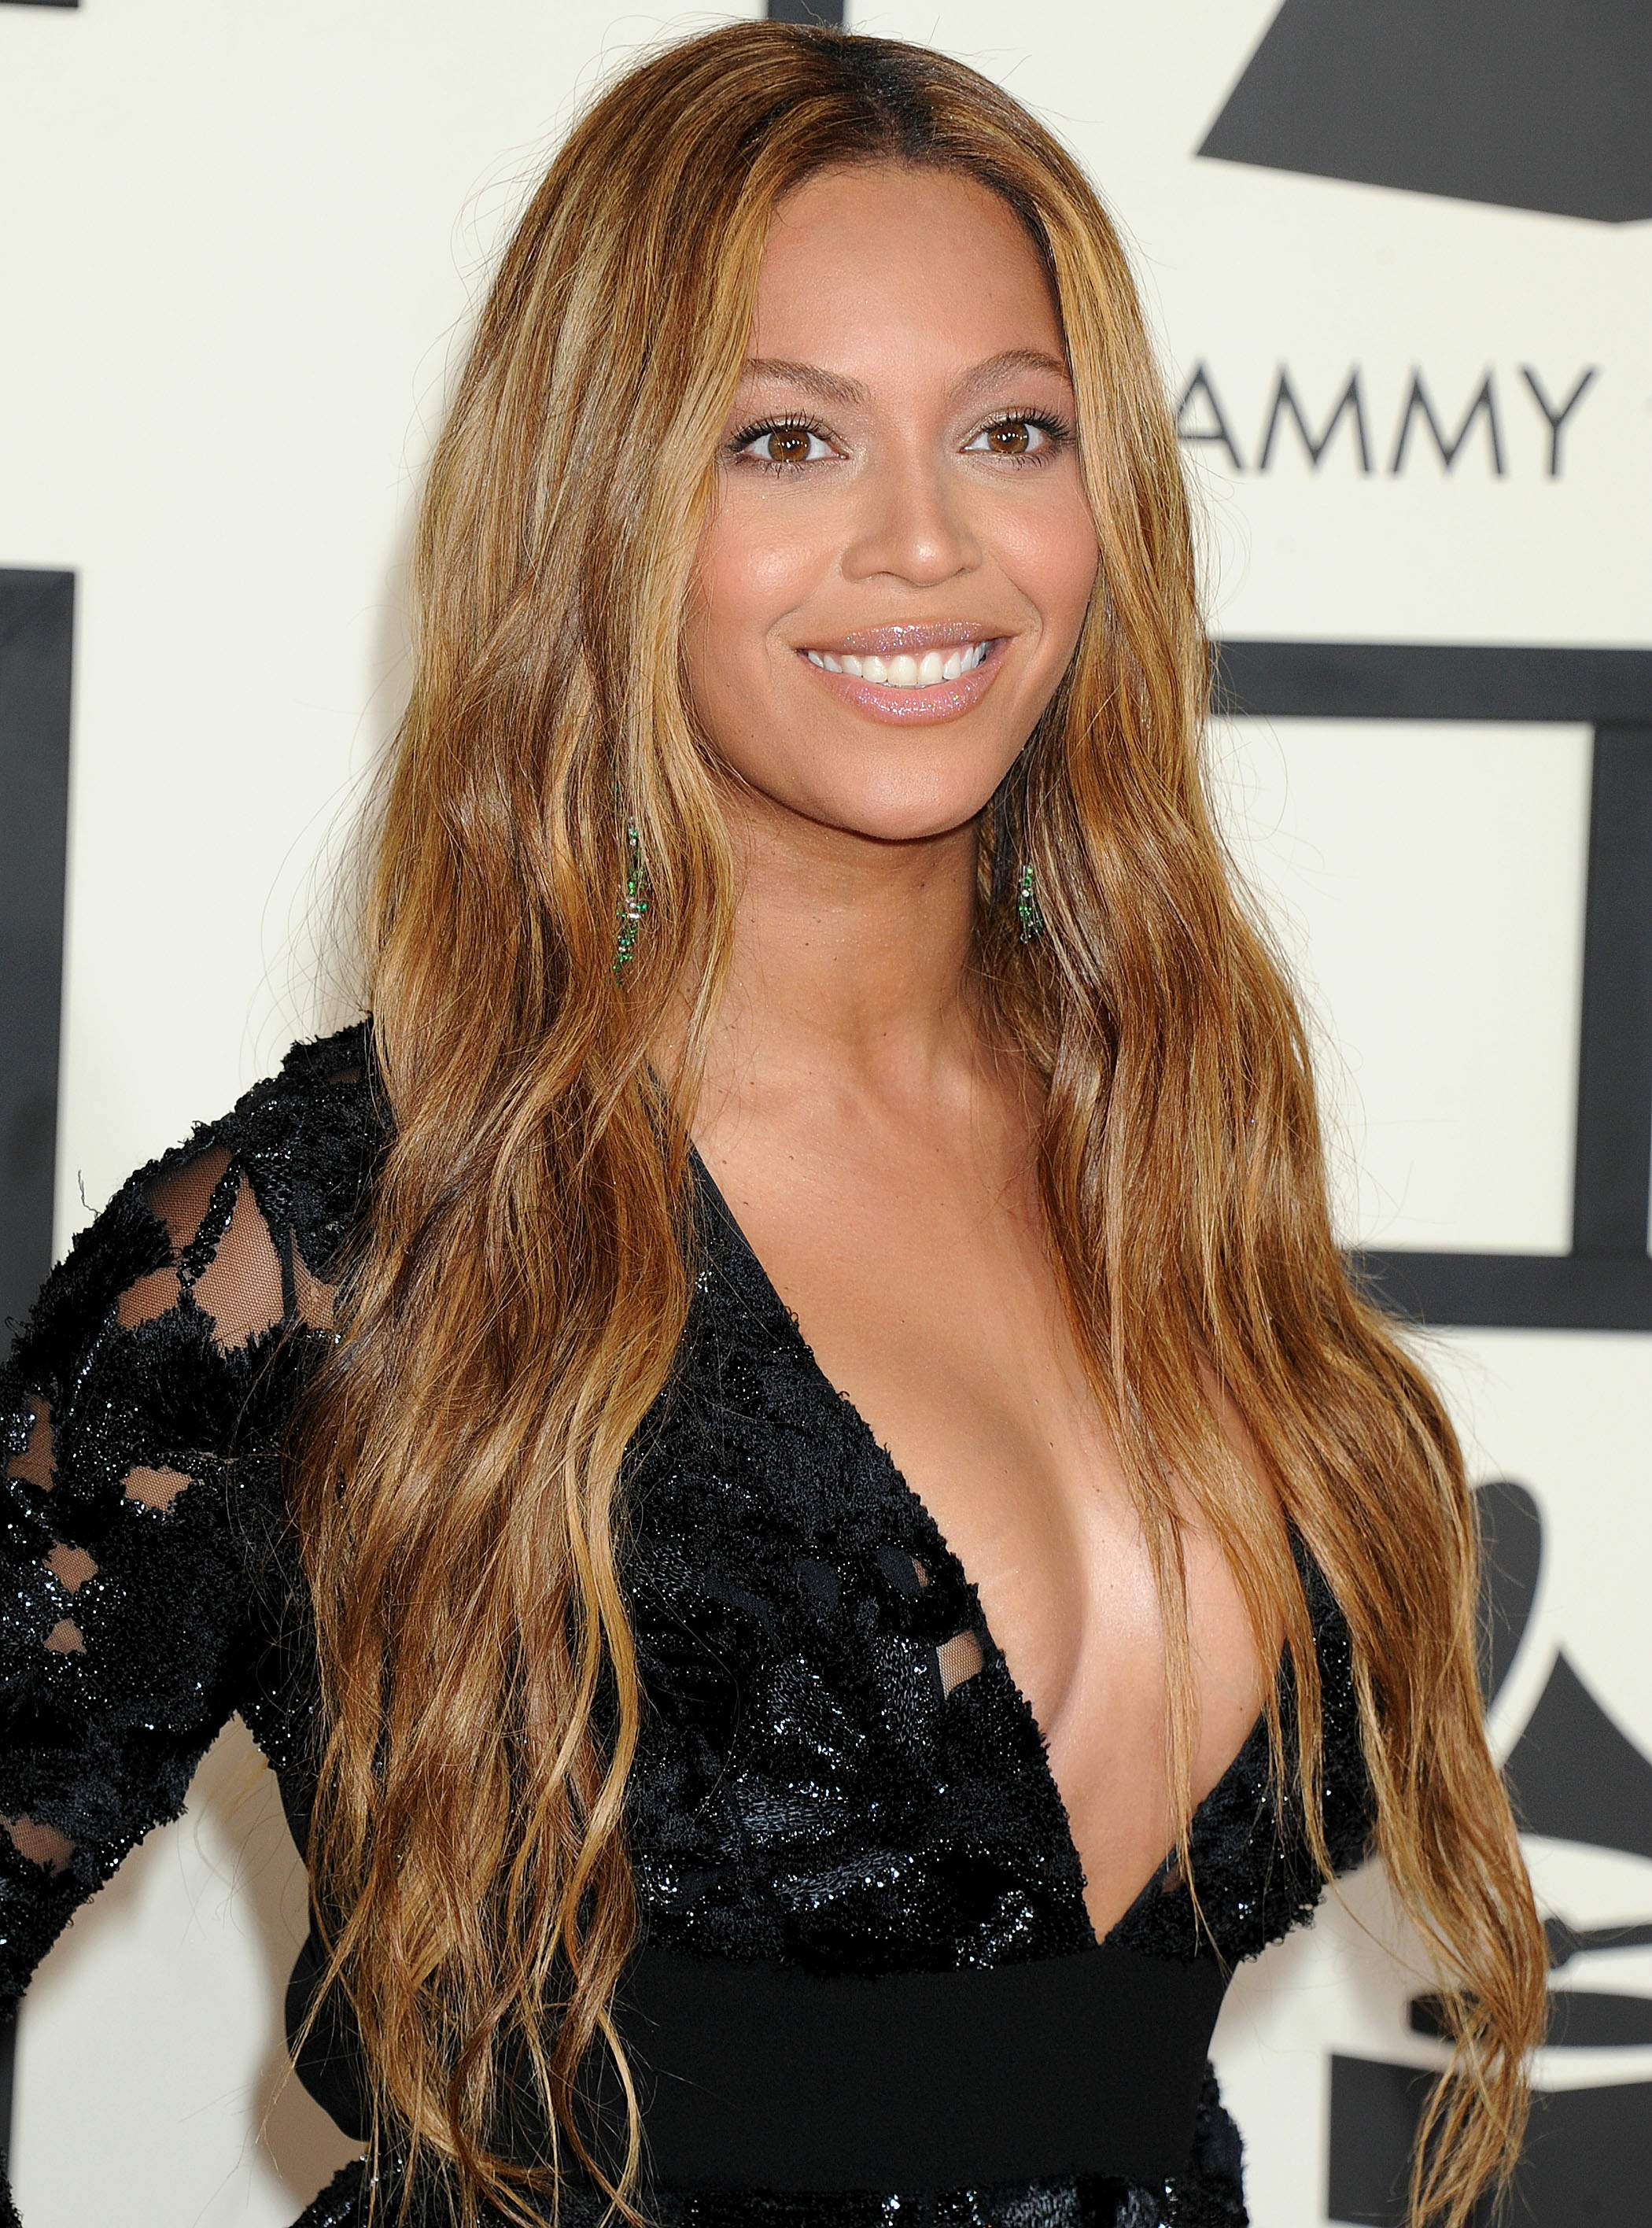 Beyonce II 3 000 HQ-UHQ (2009 To 202..)